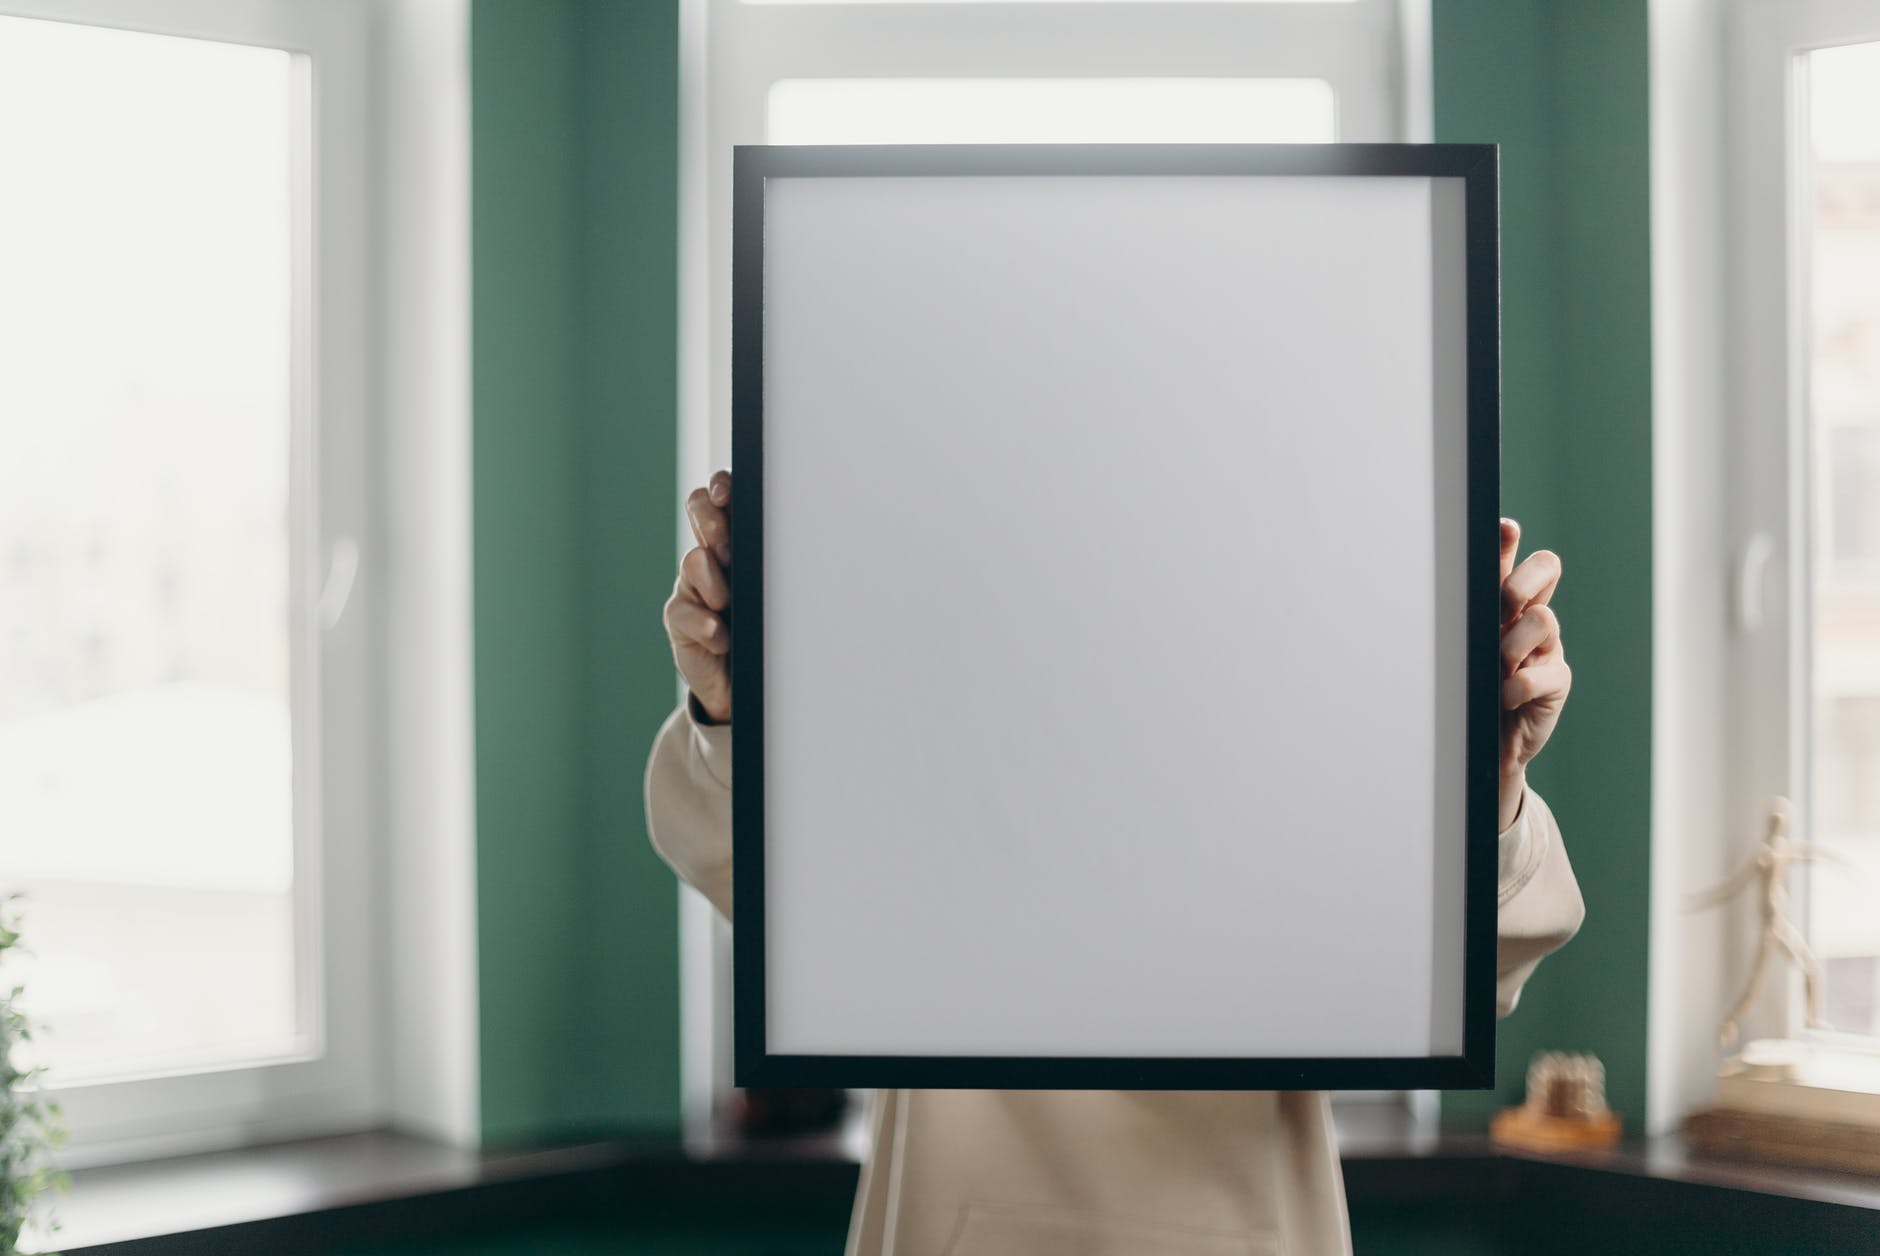 I found her in my room touching my mother's portrait. | Source: Pexels